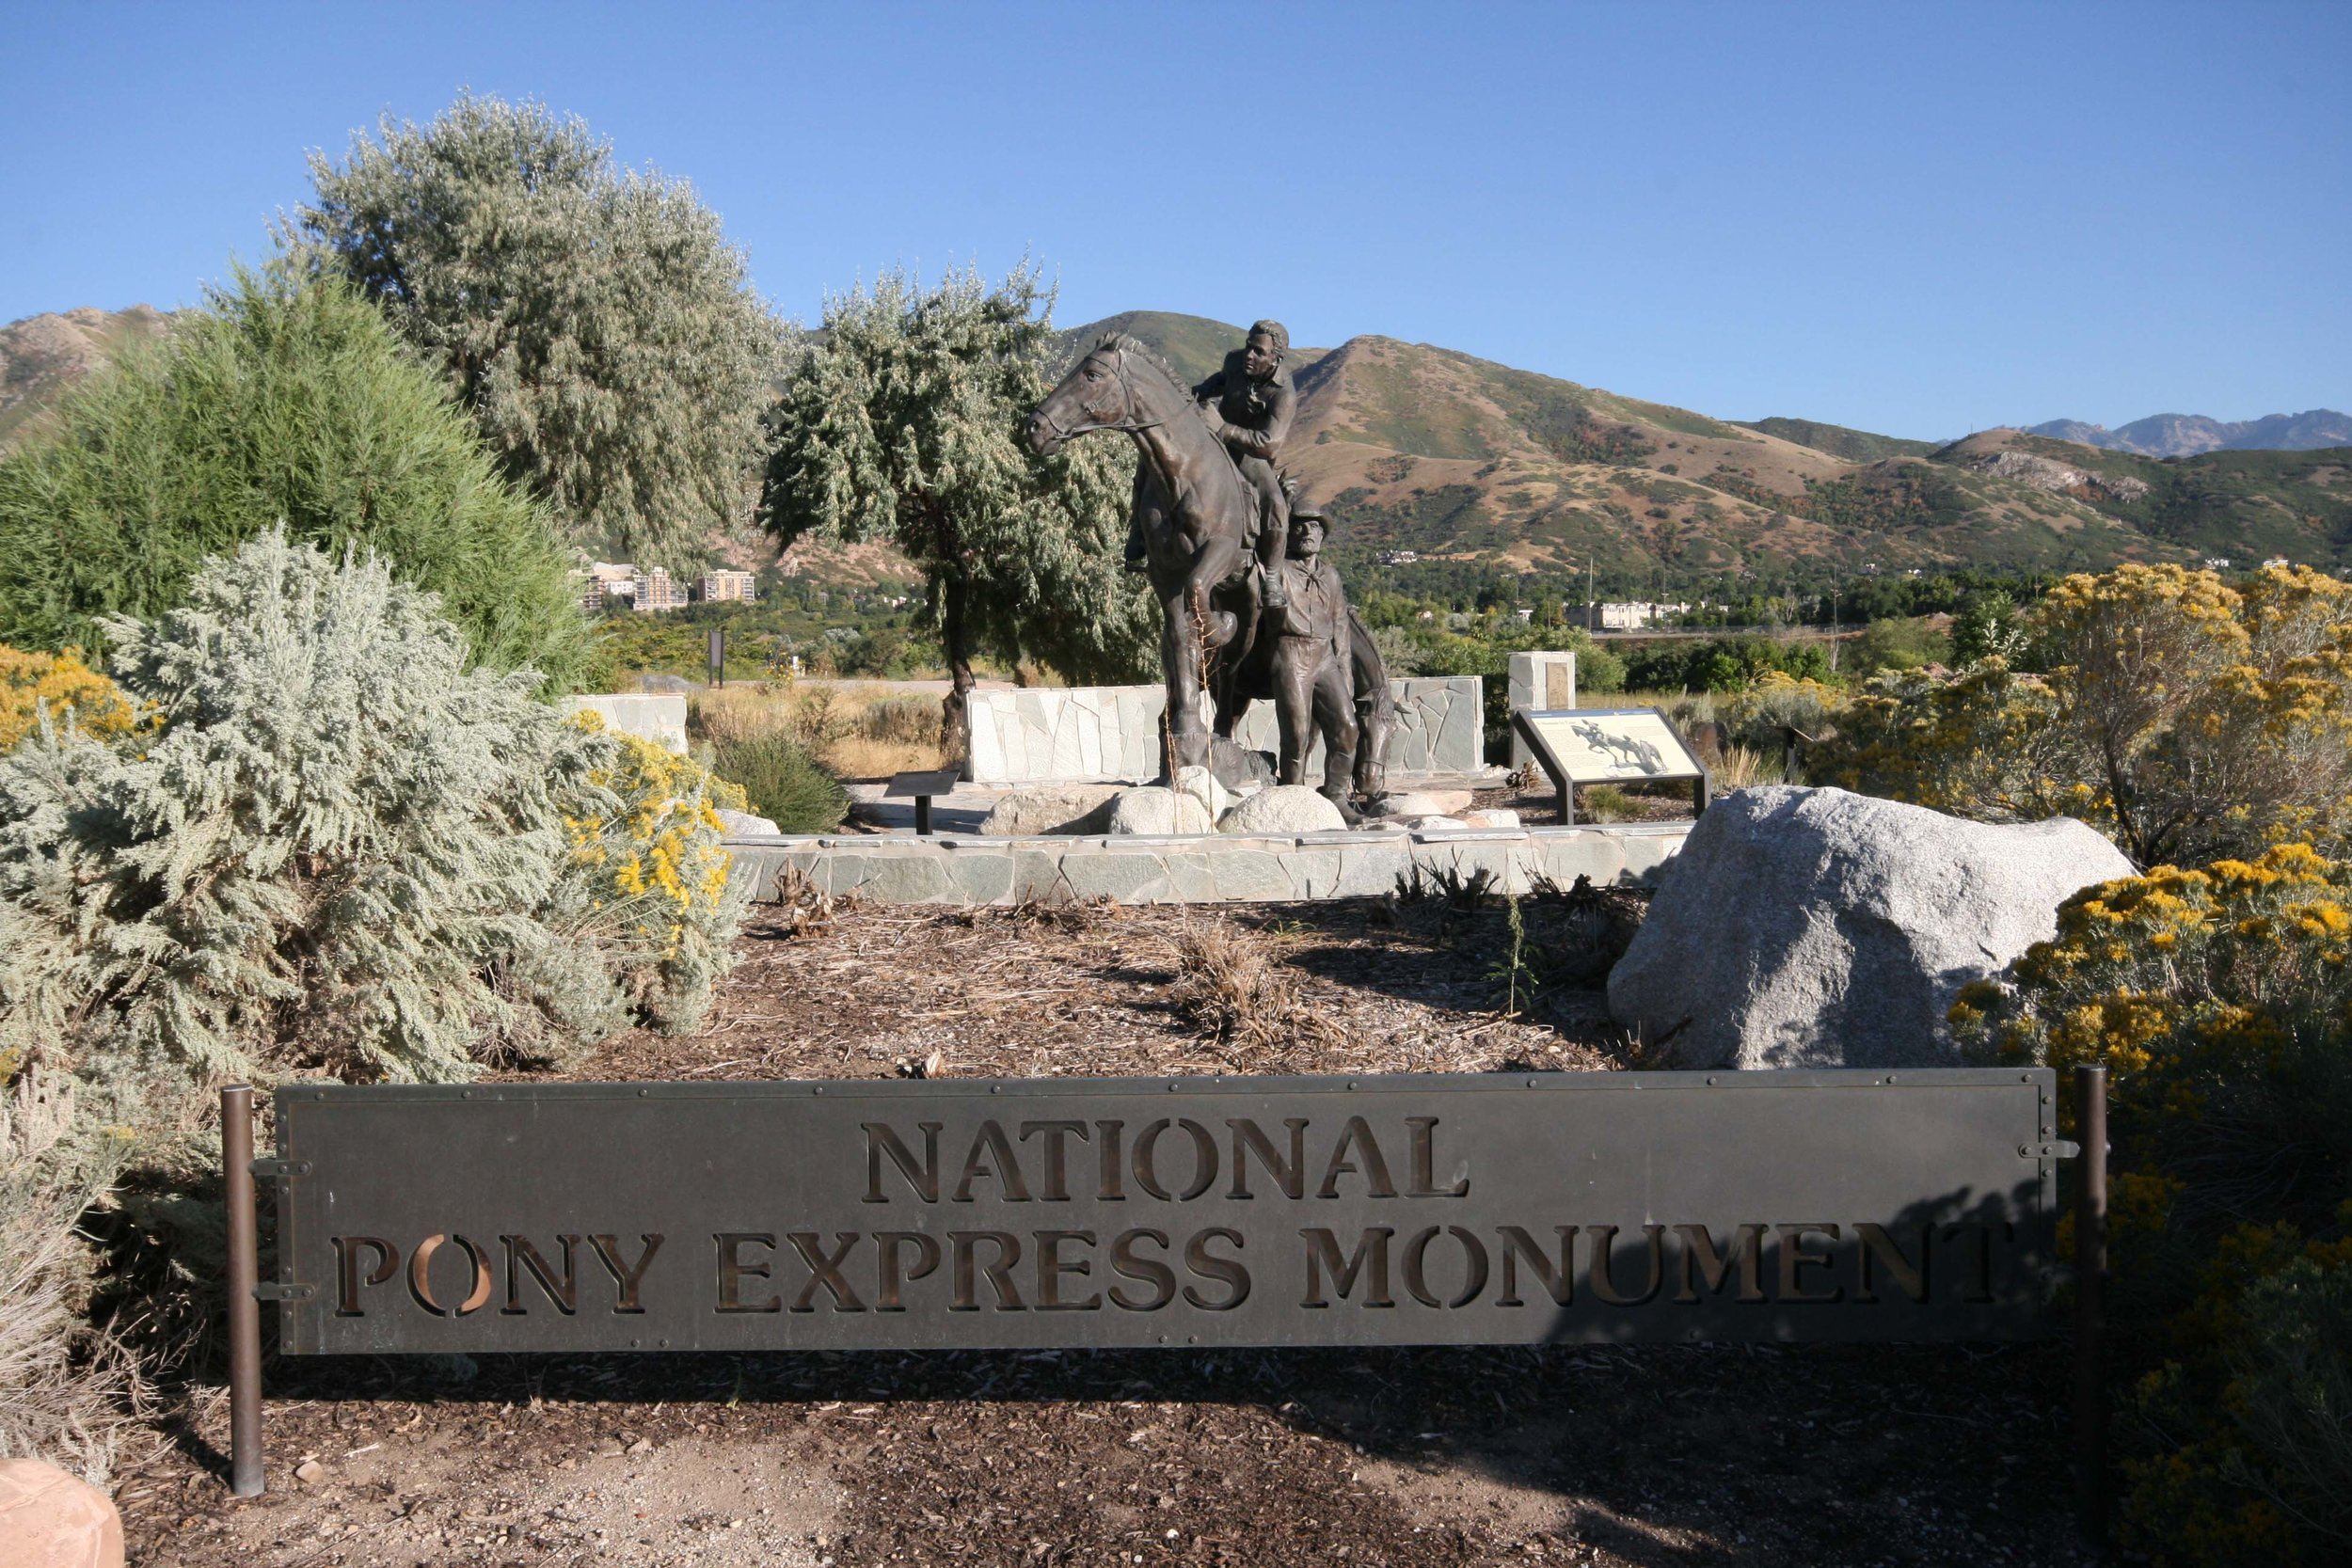 National Pony Express Monument - The rugged action captured in this horse and rider honors the courageous adventure that was the short-lived Pony Express. Facing a multitude of dangers, pony express riders criss-crossed Utah until the coming of the telegraph made their services obsolete.